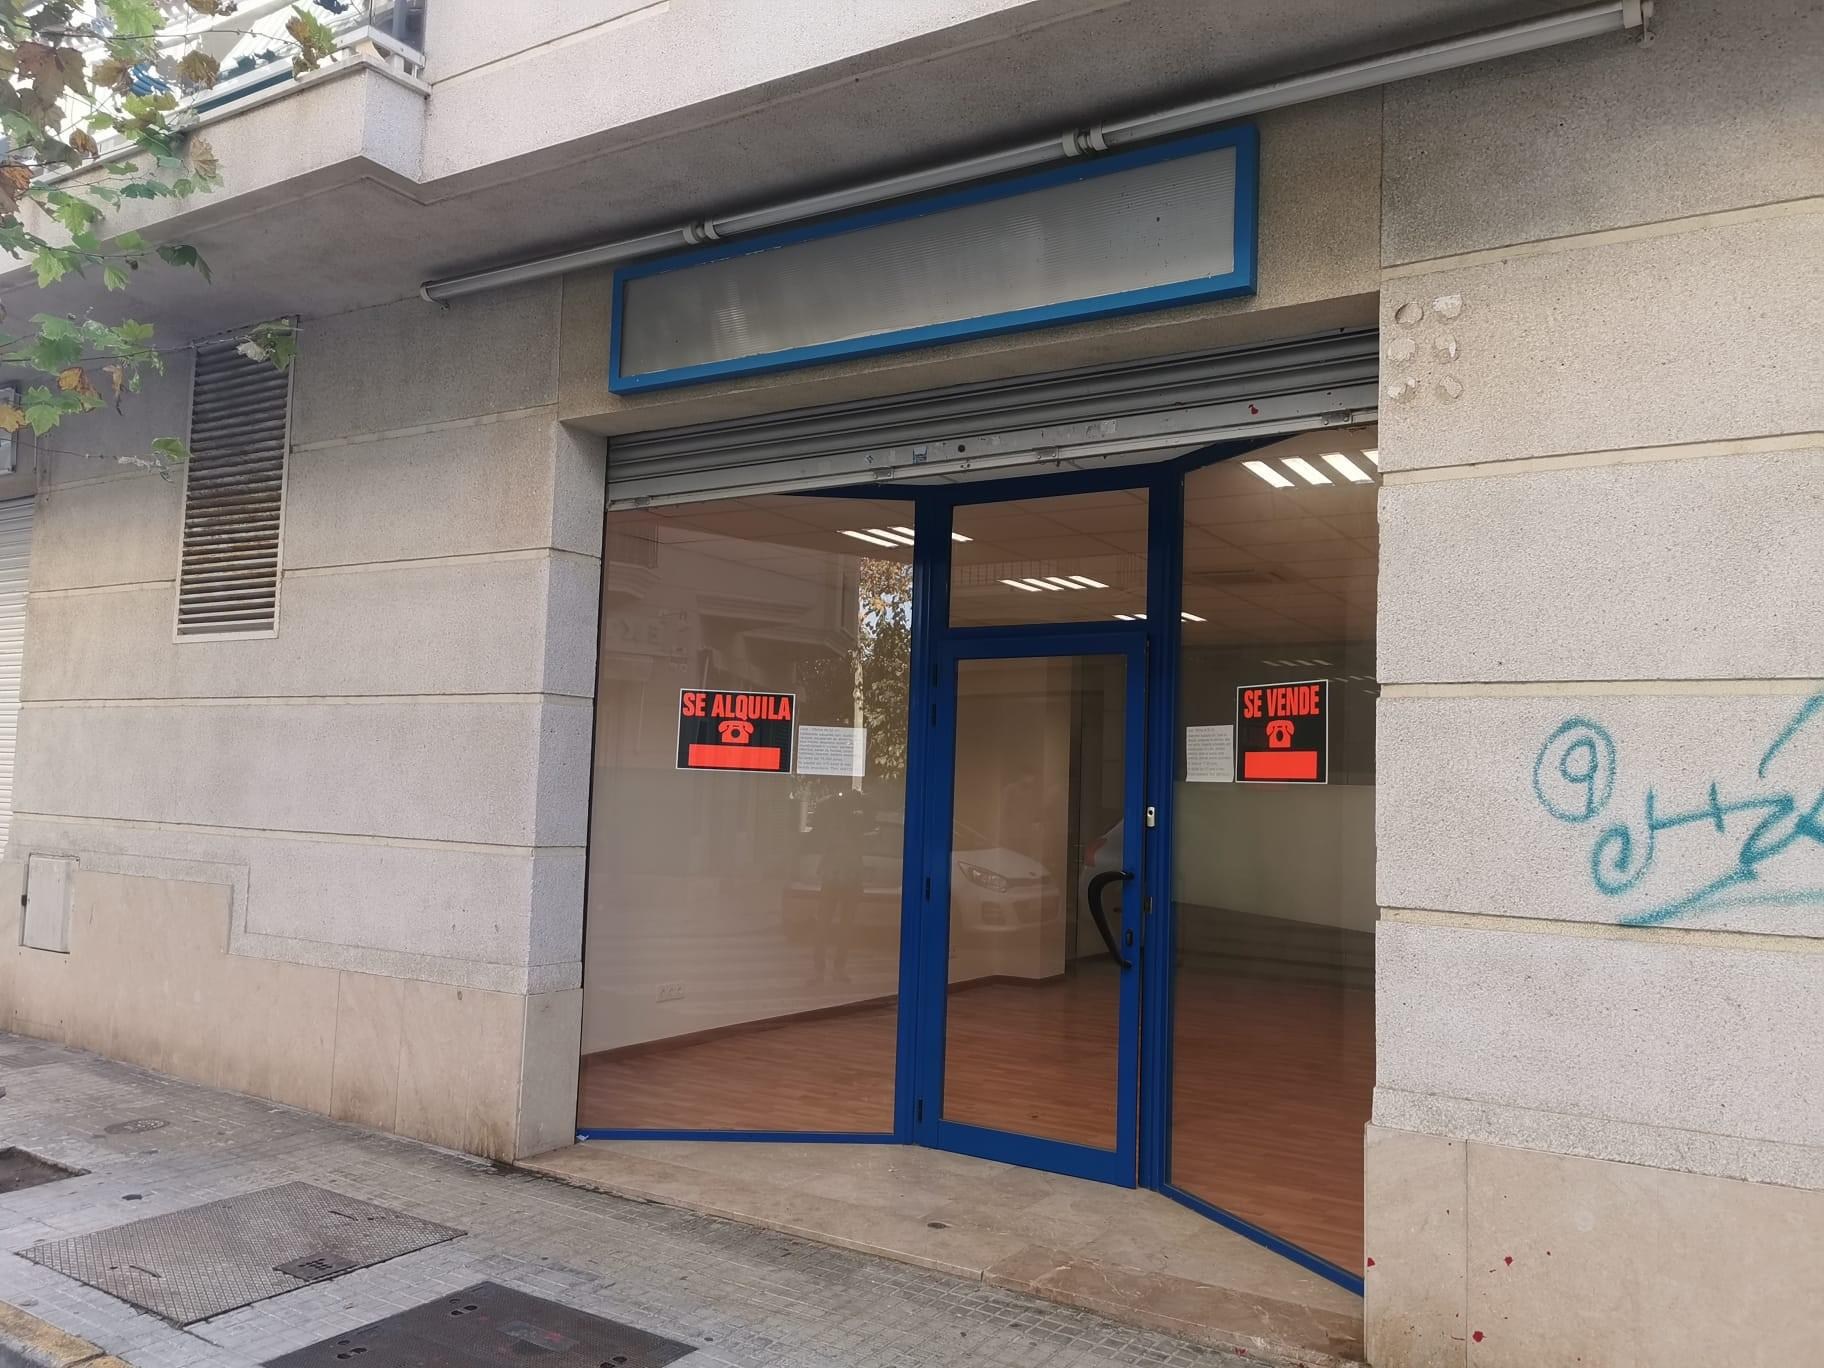 Local comercial -                                       Cambrils -                                       0 dormitoris -                                       0 ocupants